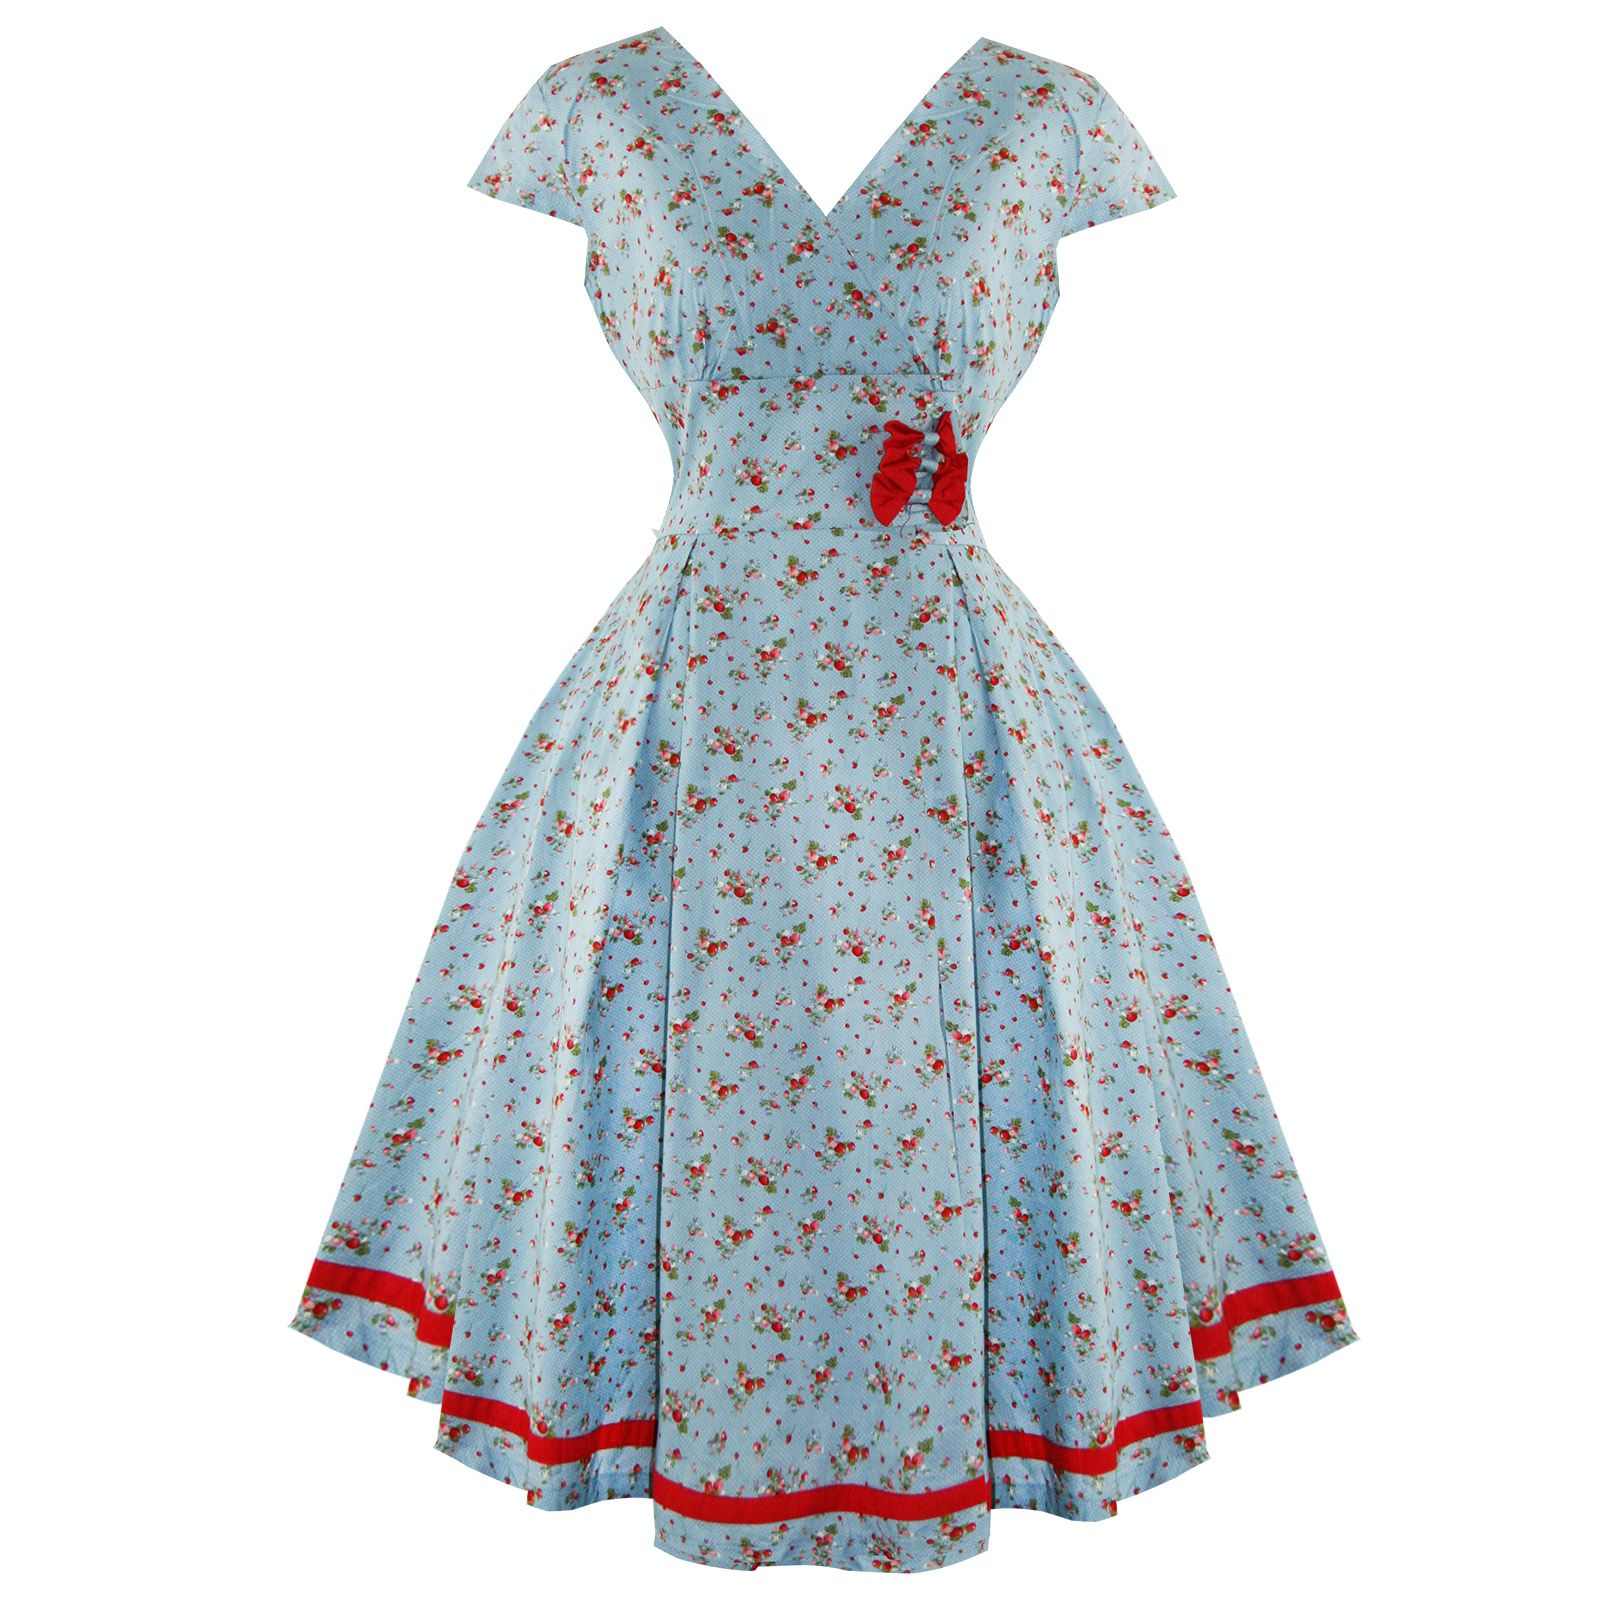 Whispering Ivy Blue Ditzy Print Floral 50s Vintage Tea Party Dress ...